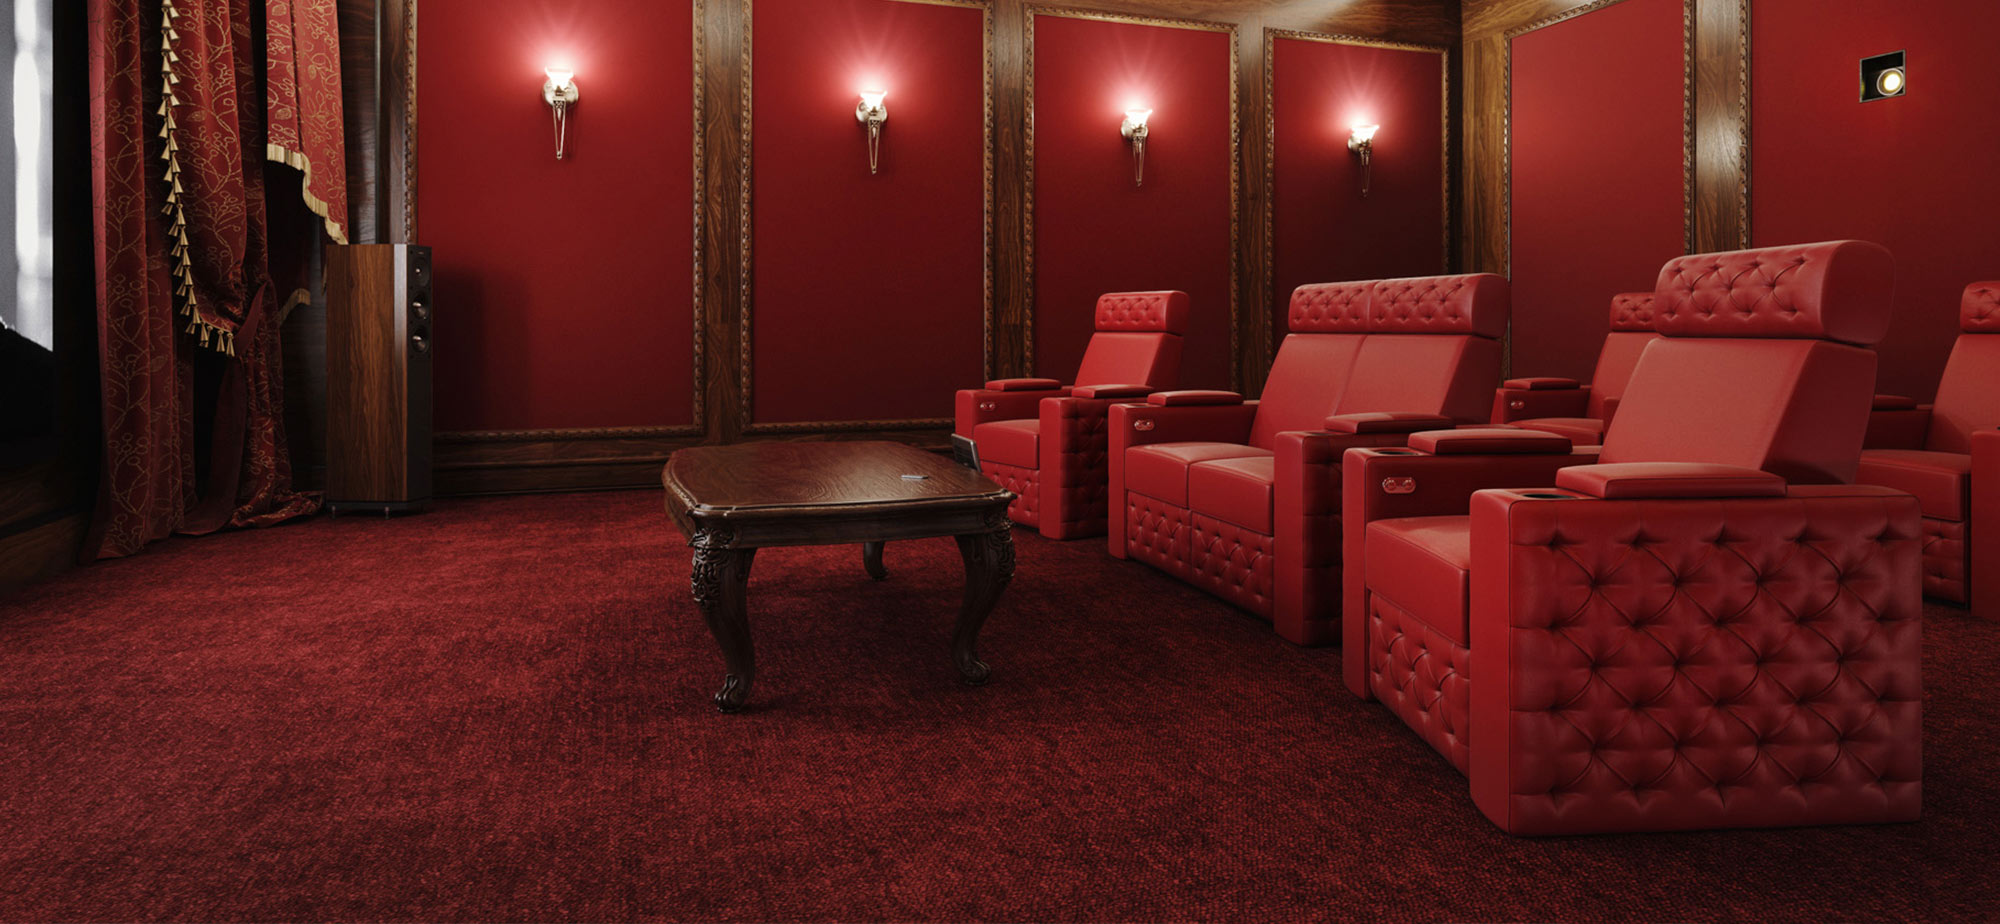 Chesterfield - theater seating - Moovia